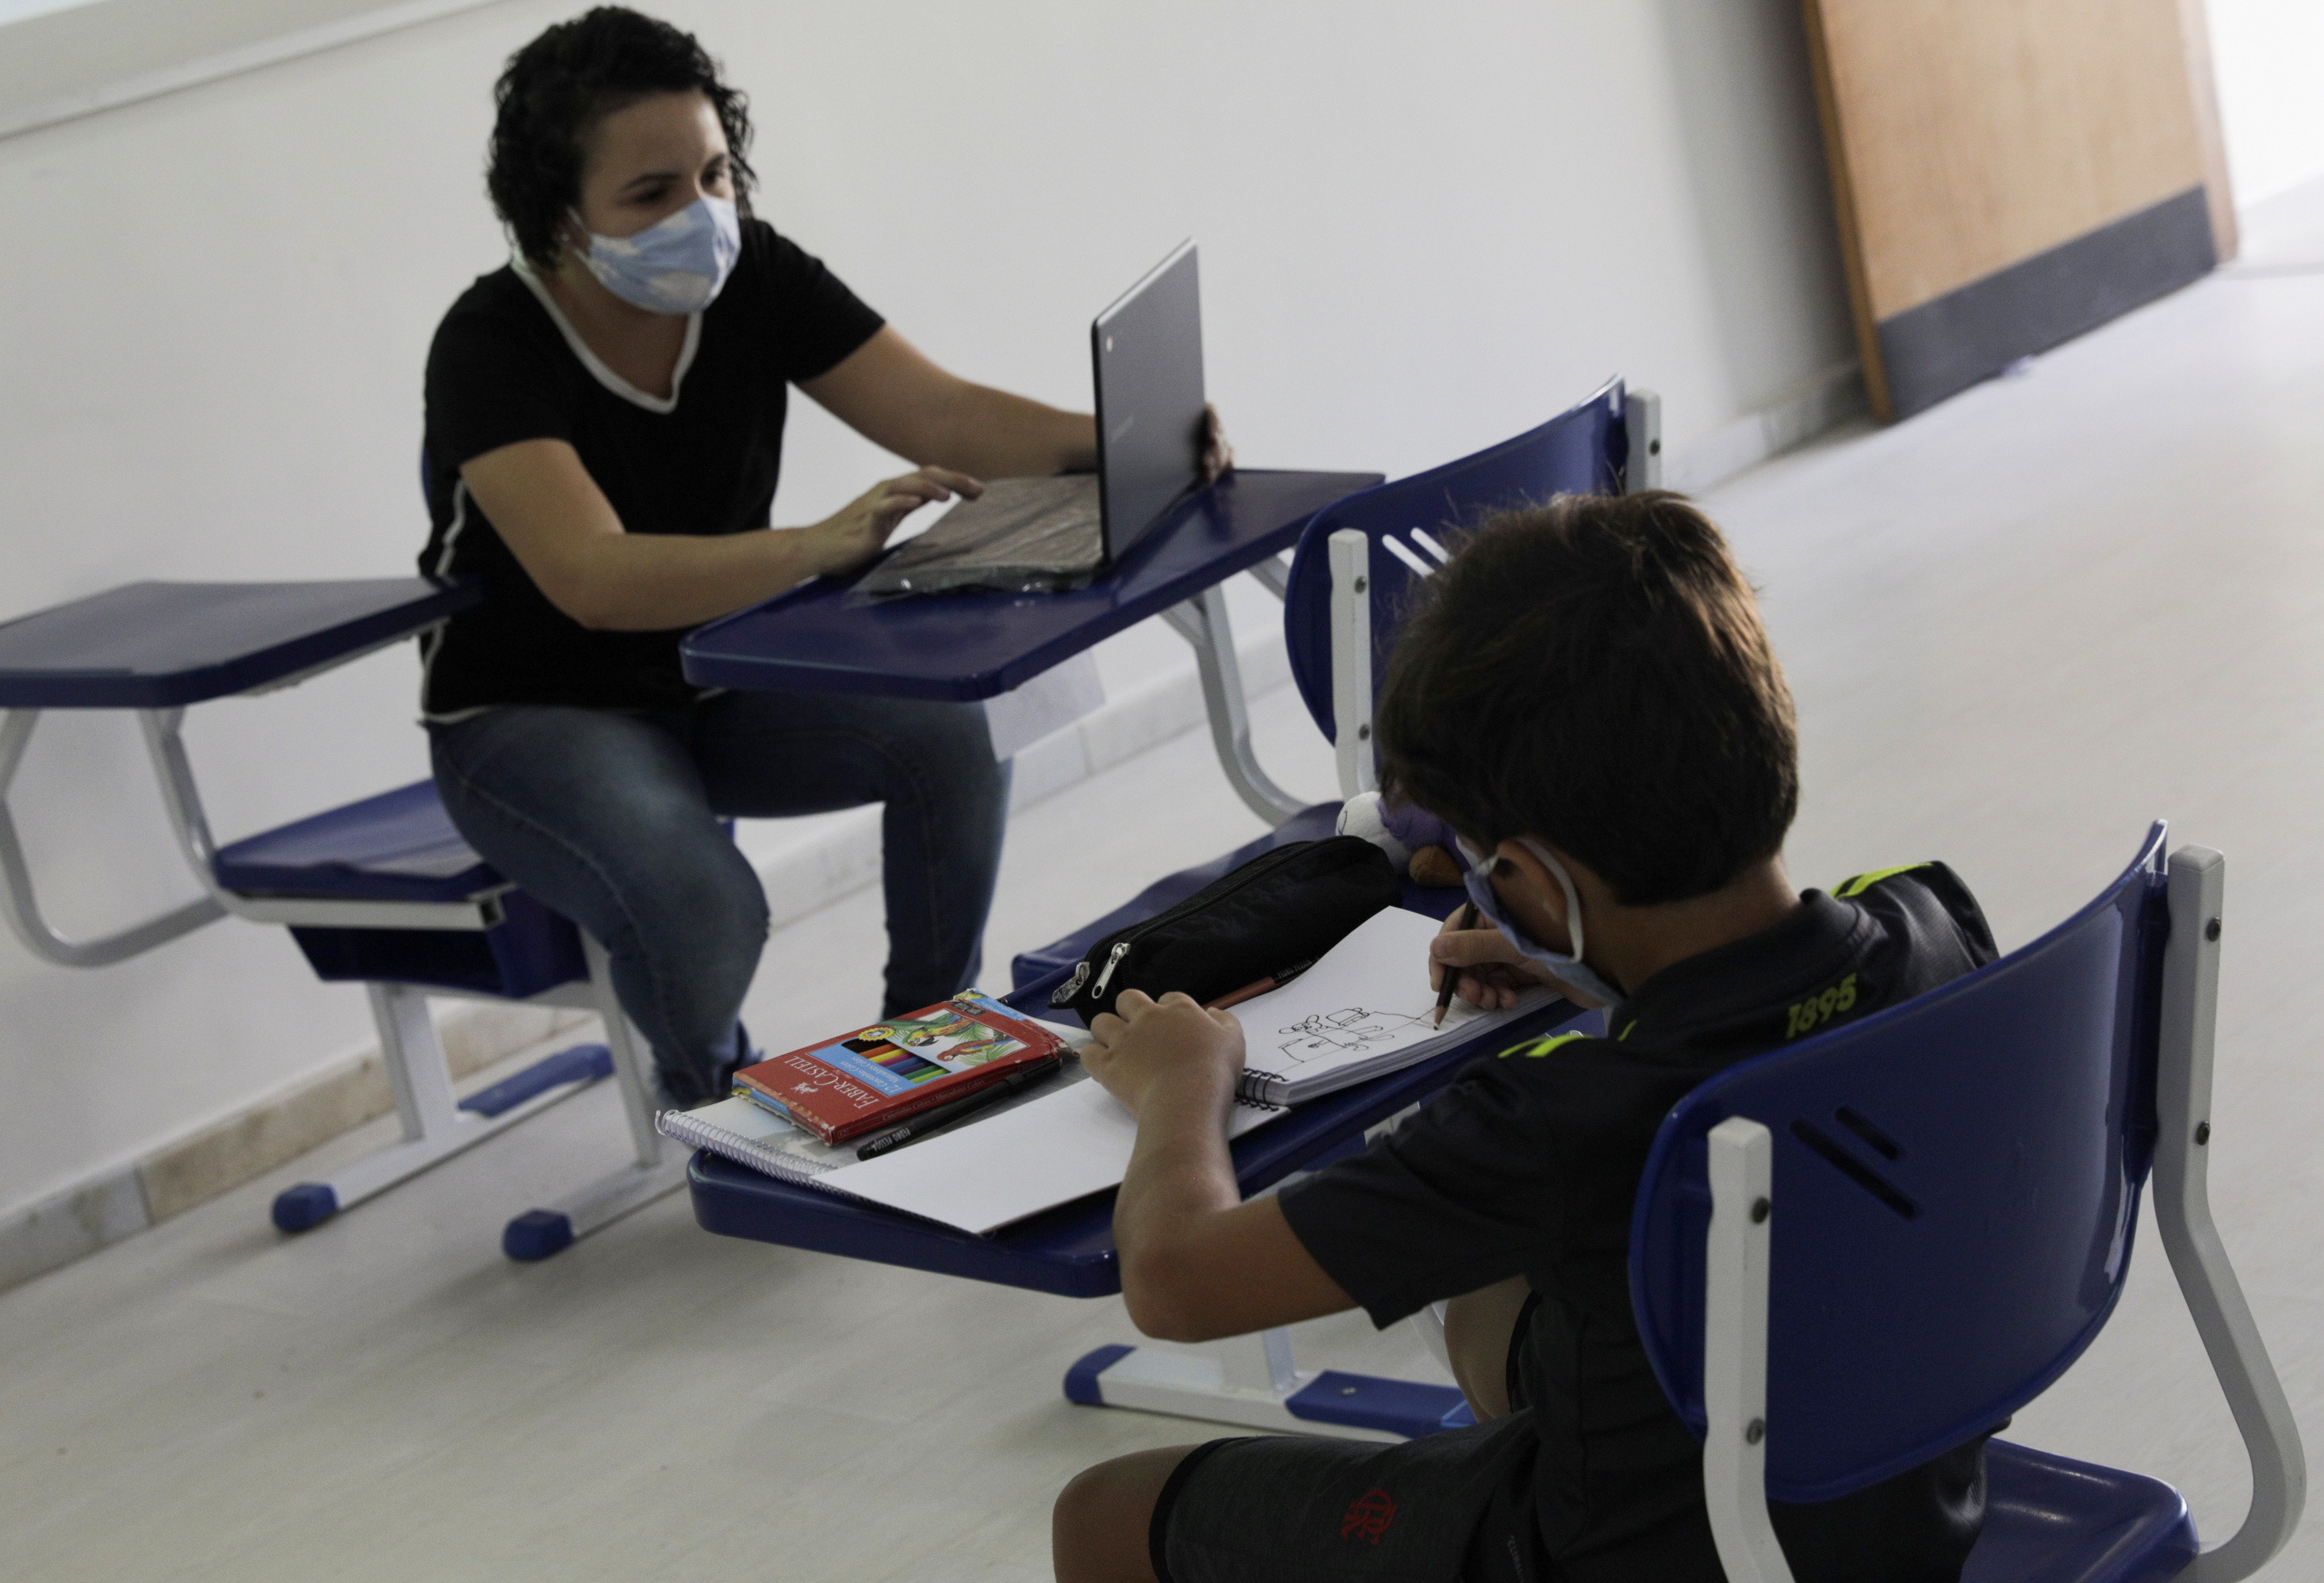 A student of Nova Escola school attends a class as his teacher talks to his colleagues studying on-line from their homes during the first day of the return of private schools in Rio de Janeiro, amid the outbreak of the coronavirus disease (COVID-19), Brazil, September 14, 2020. REUTERS/Ricardo Moraes - RC2JYI9Q2L6T